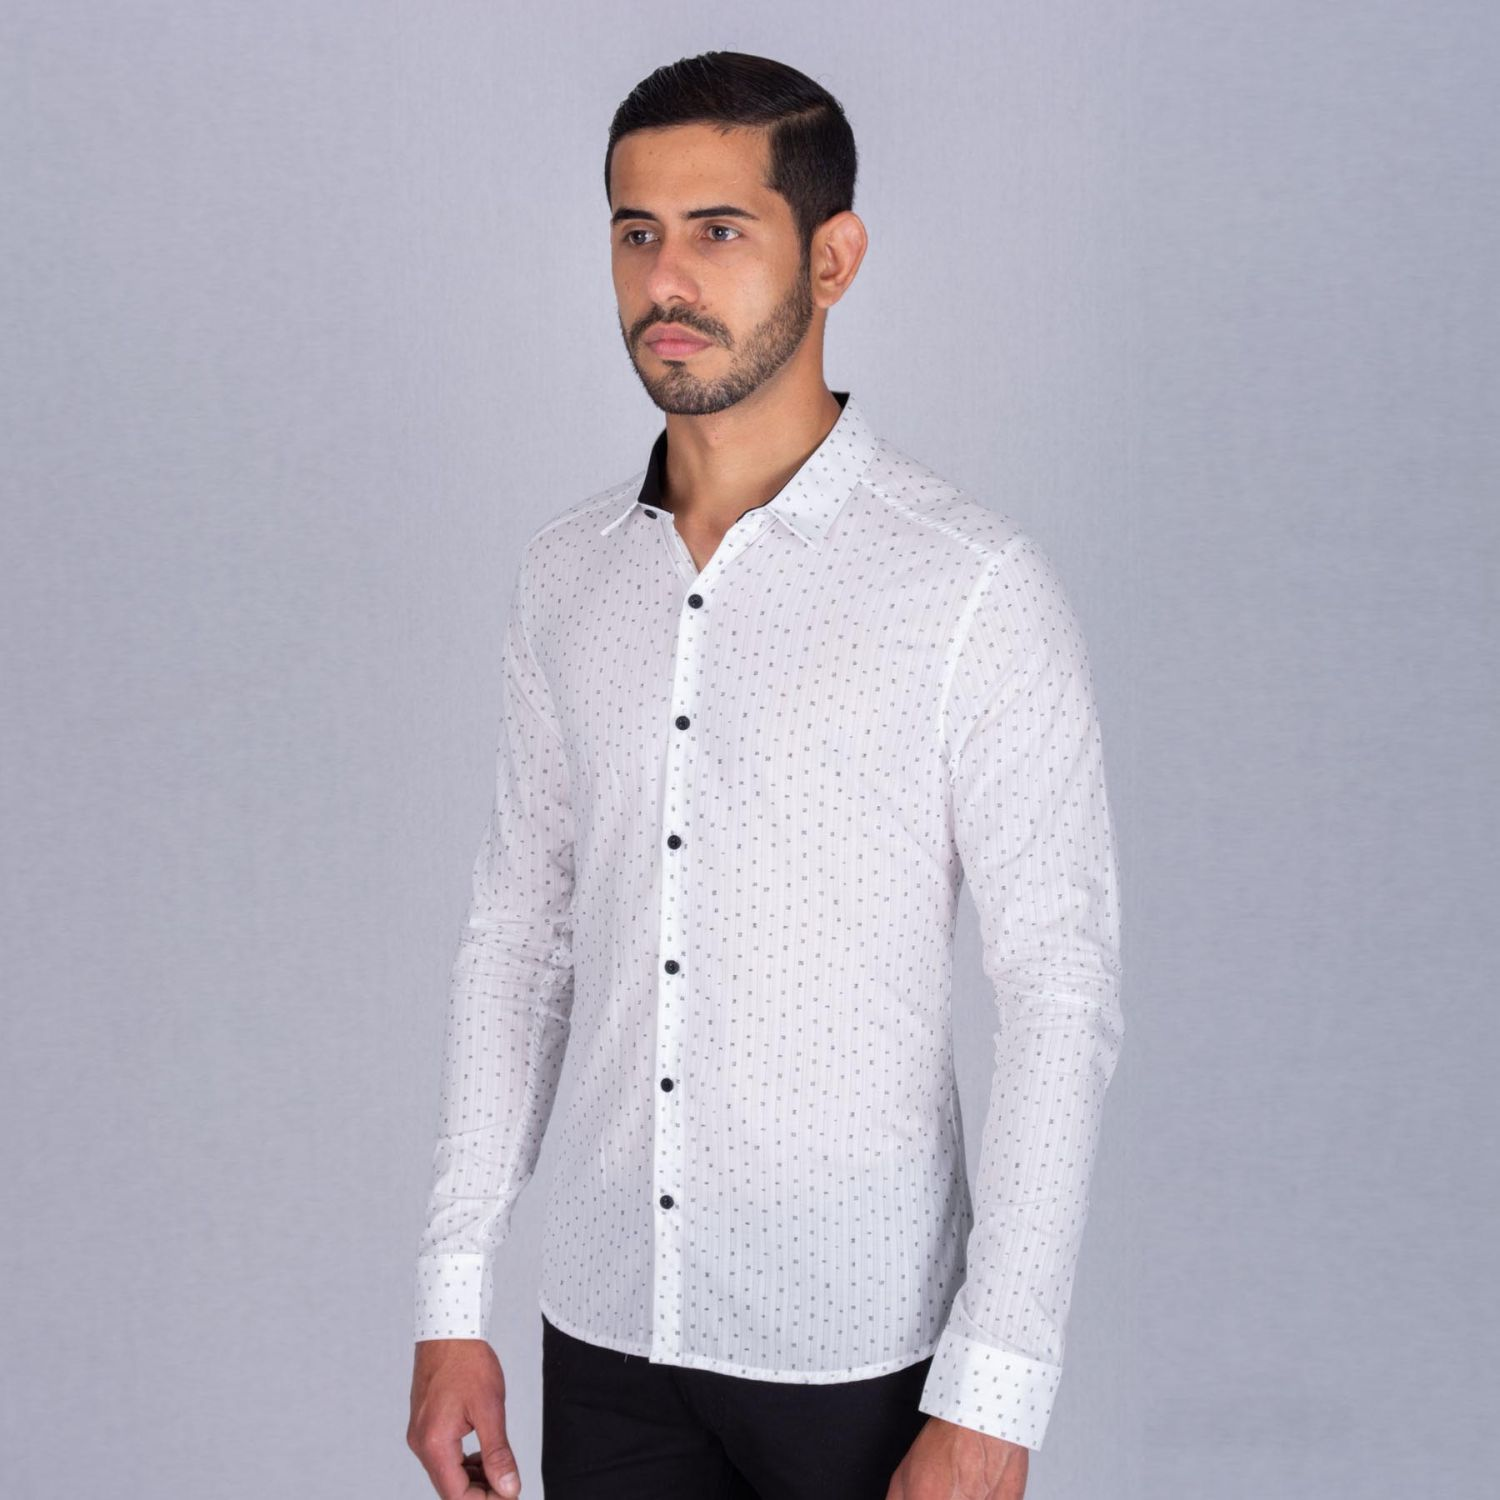 The Cult Camisa Manga Larga, Perfect Fit Blanco / negro Camisas de botones